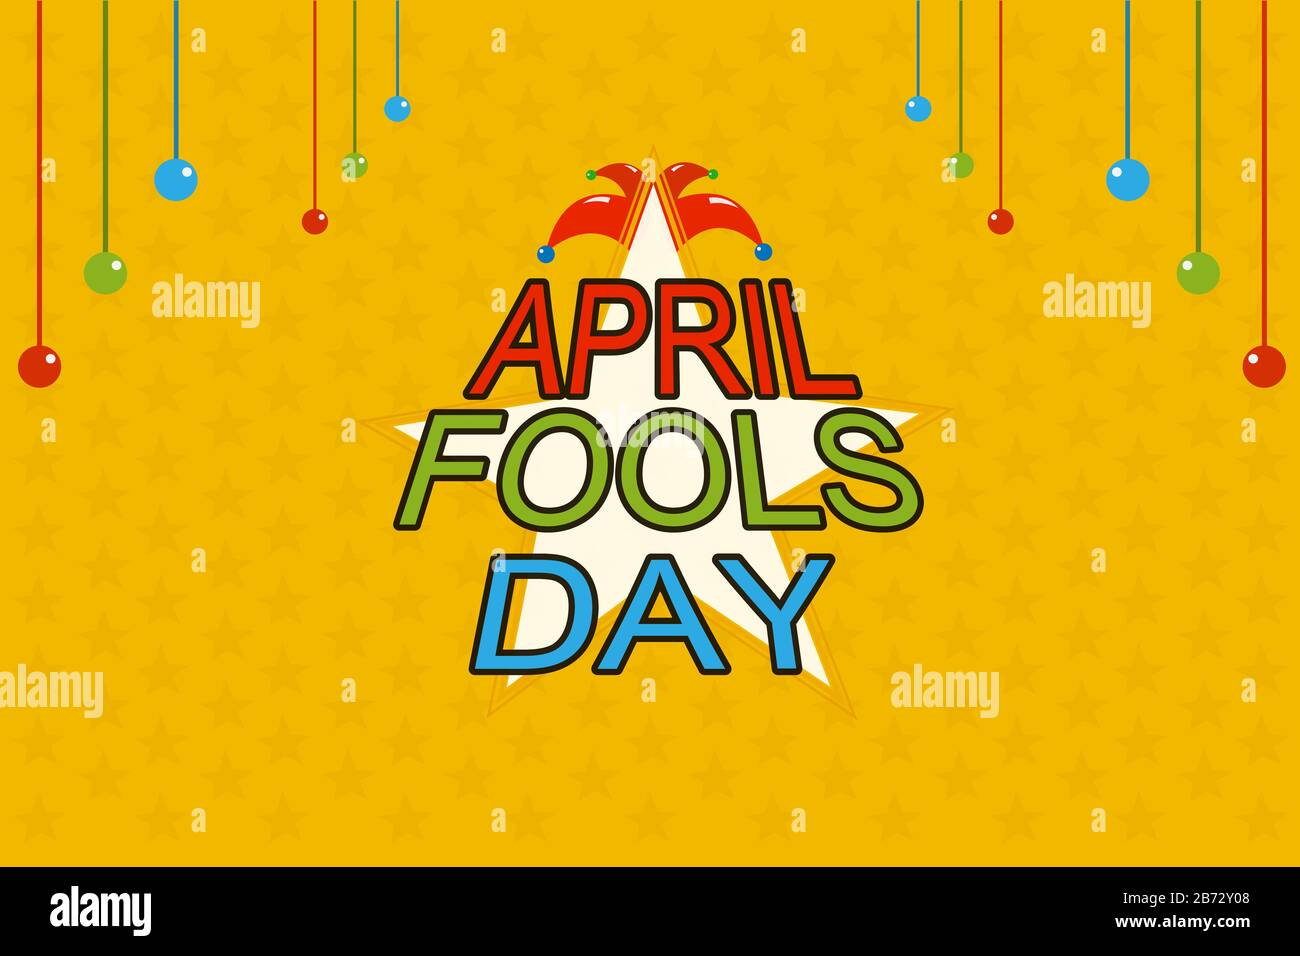 April Fools Day with star background flat design holiday presentation Stock  Photo - Alamy